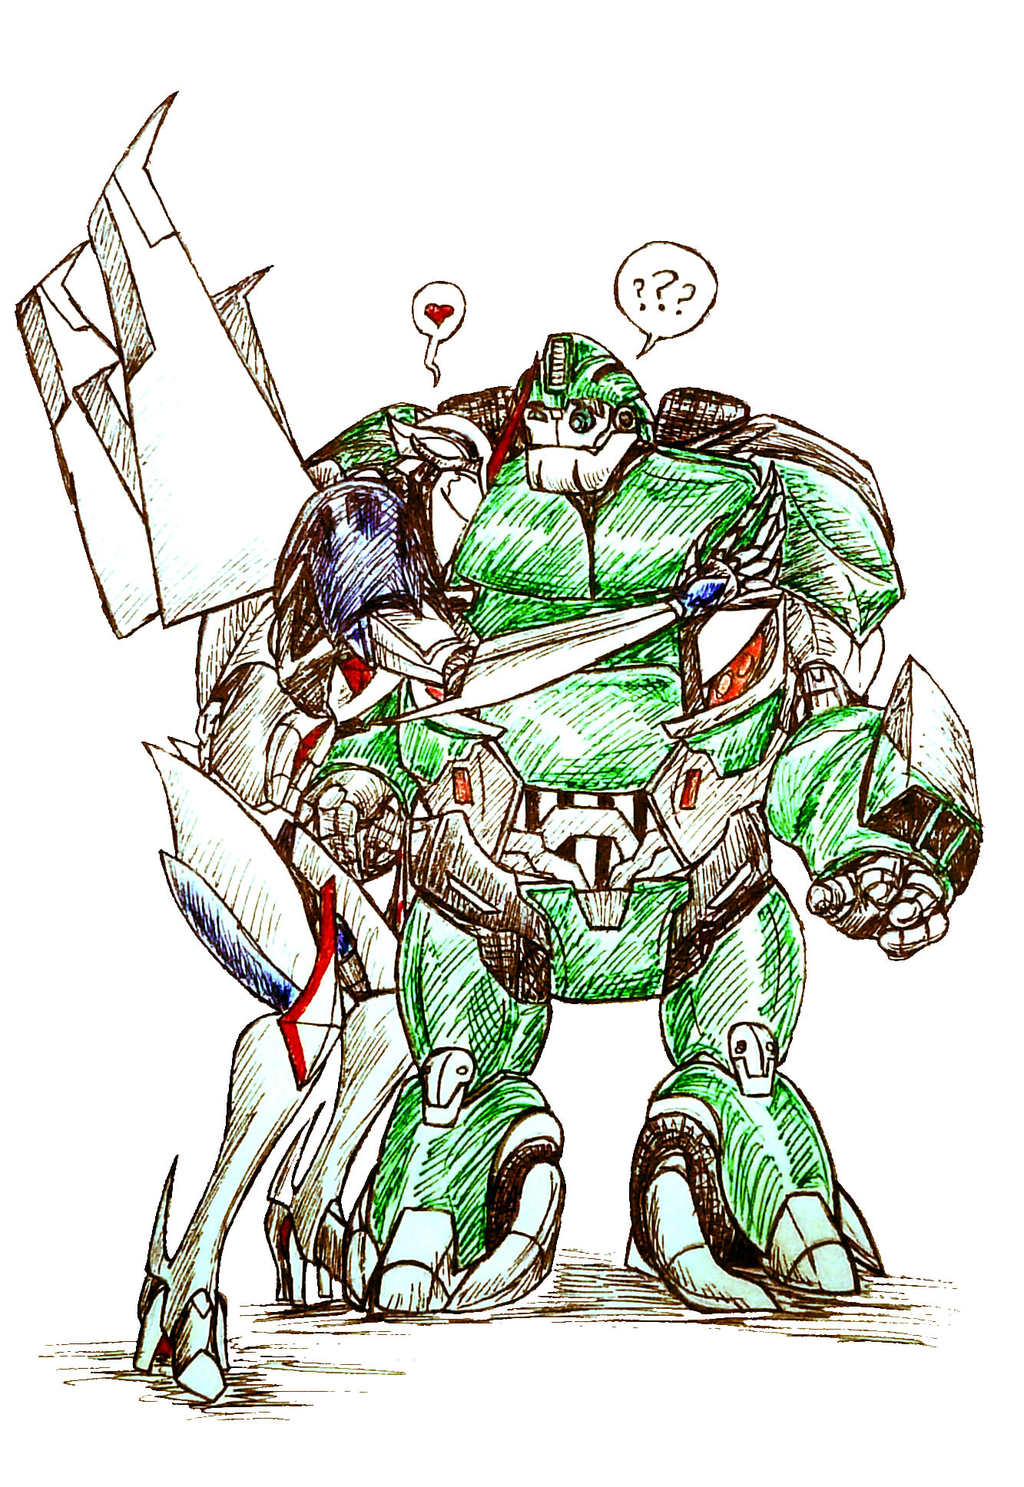 Seriously Though What'd You Put In That Energon.